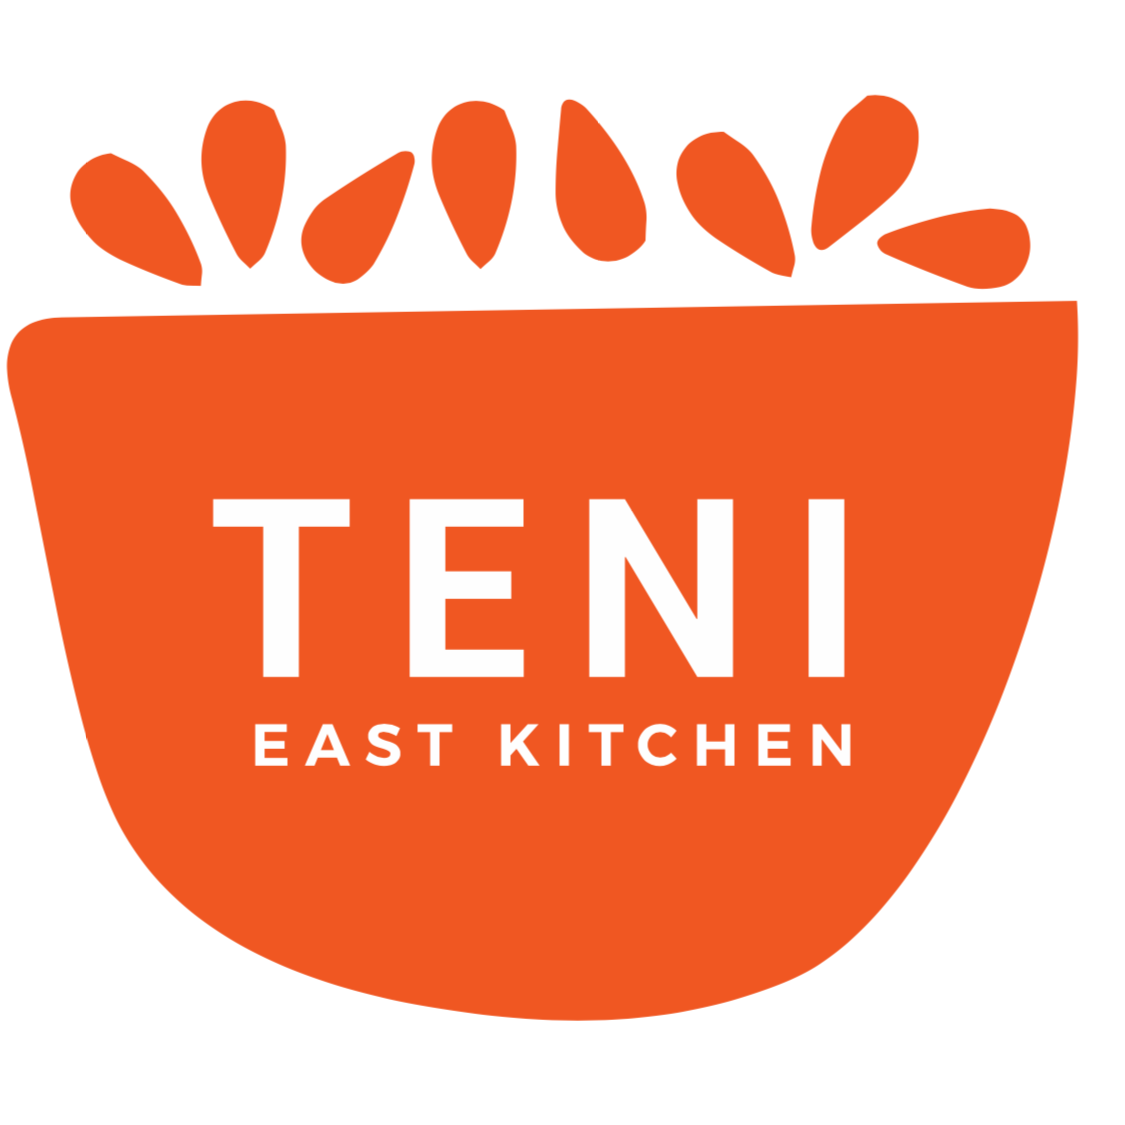 Teni East Kitchen Logo